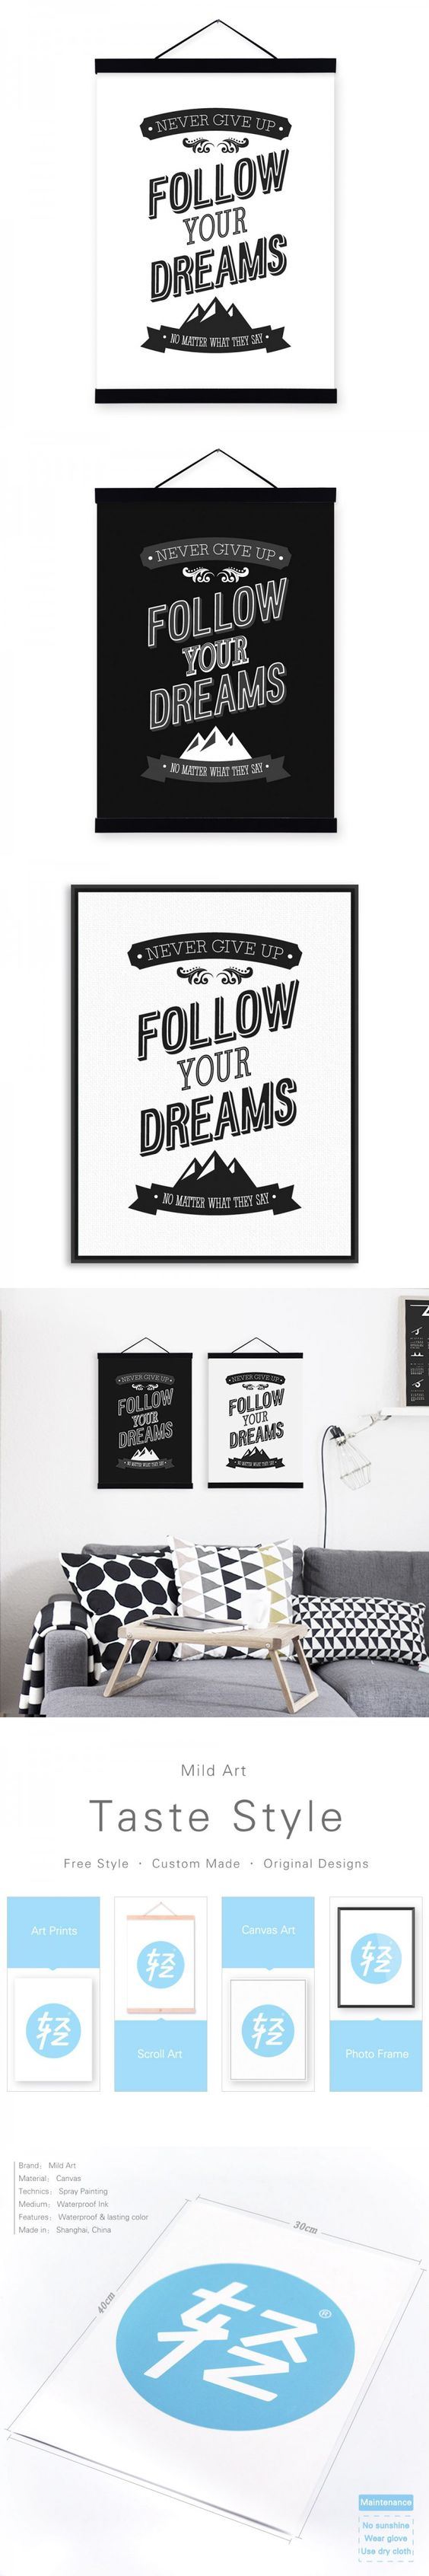 Modern Minimalist Black White Motivational Typography Life Quotes A4 Art Prints Picture Wall Pictures Canvas Painting Home Decor $7